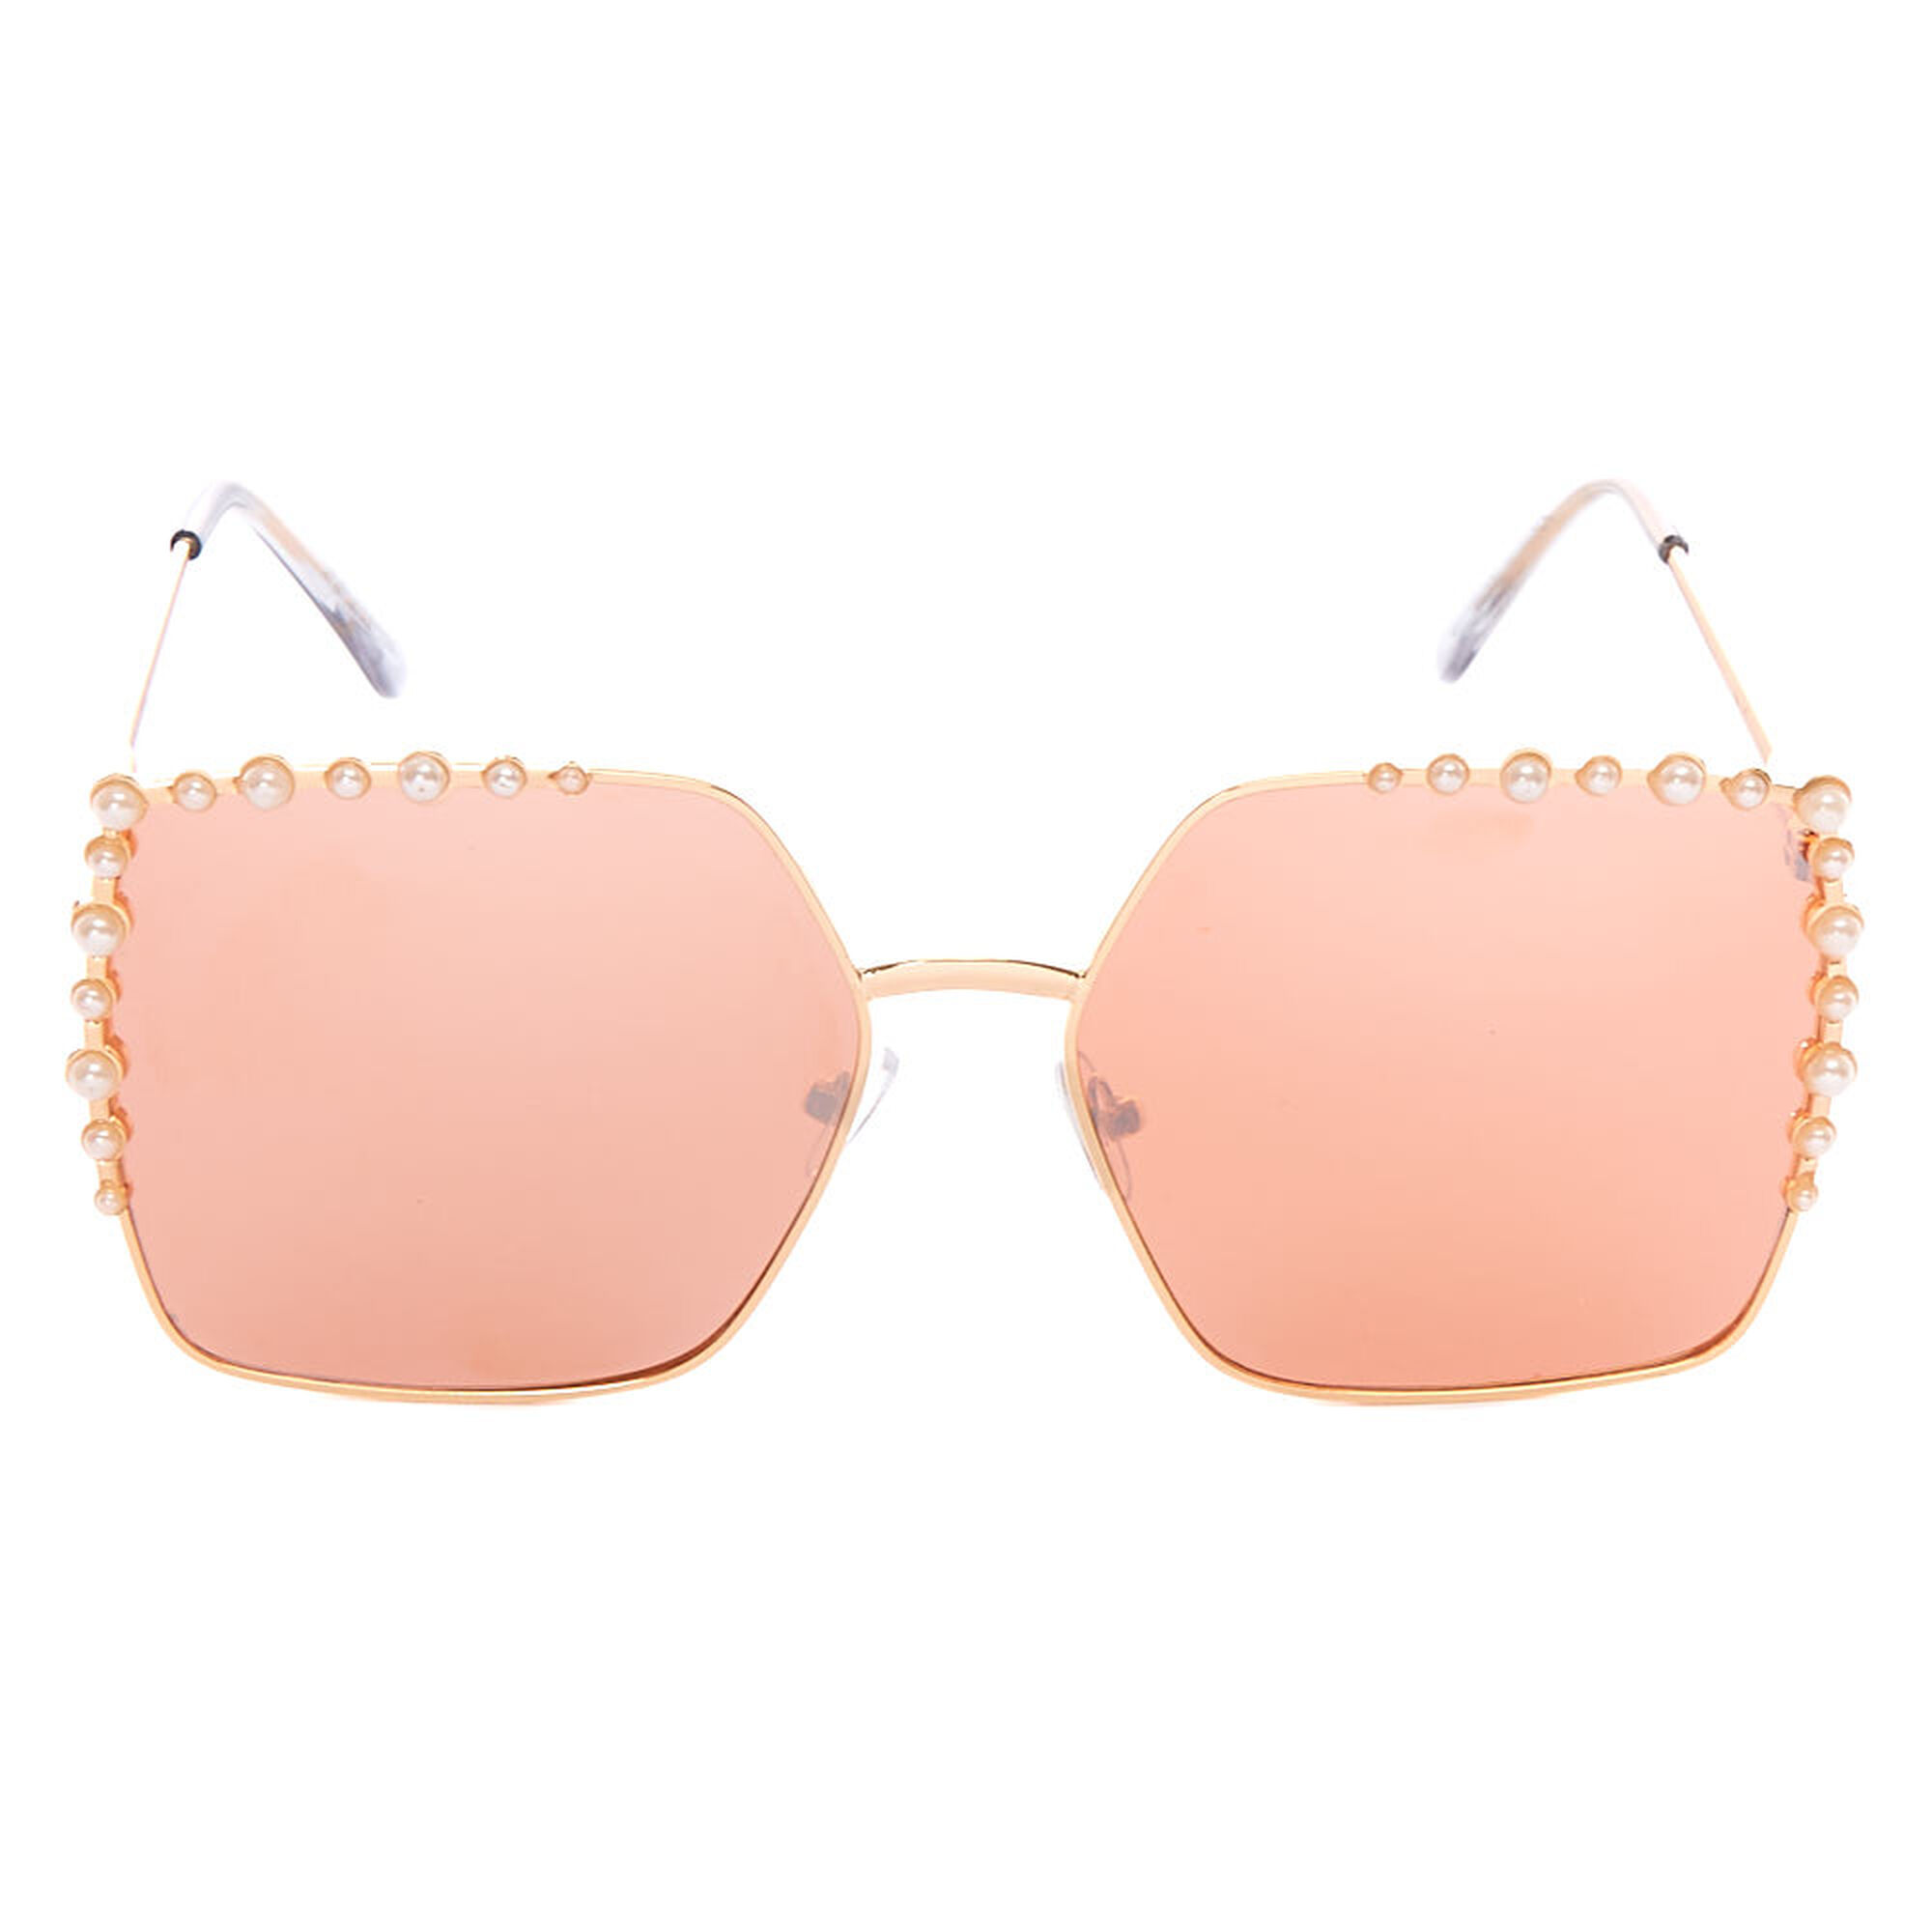 f46aecb2a53 ... Vintage Oversized Square Pearl Sunglasses - Rose Gold